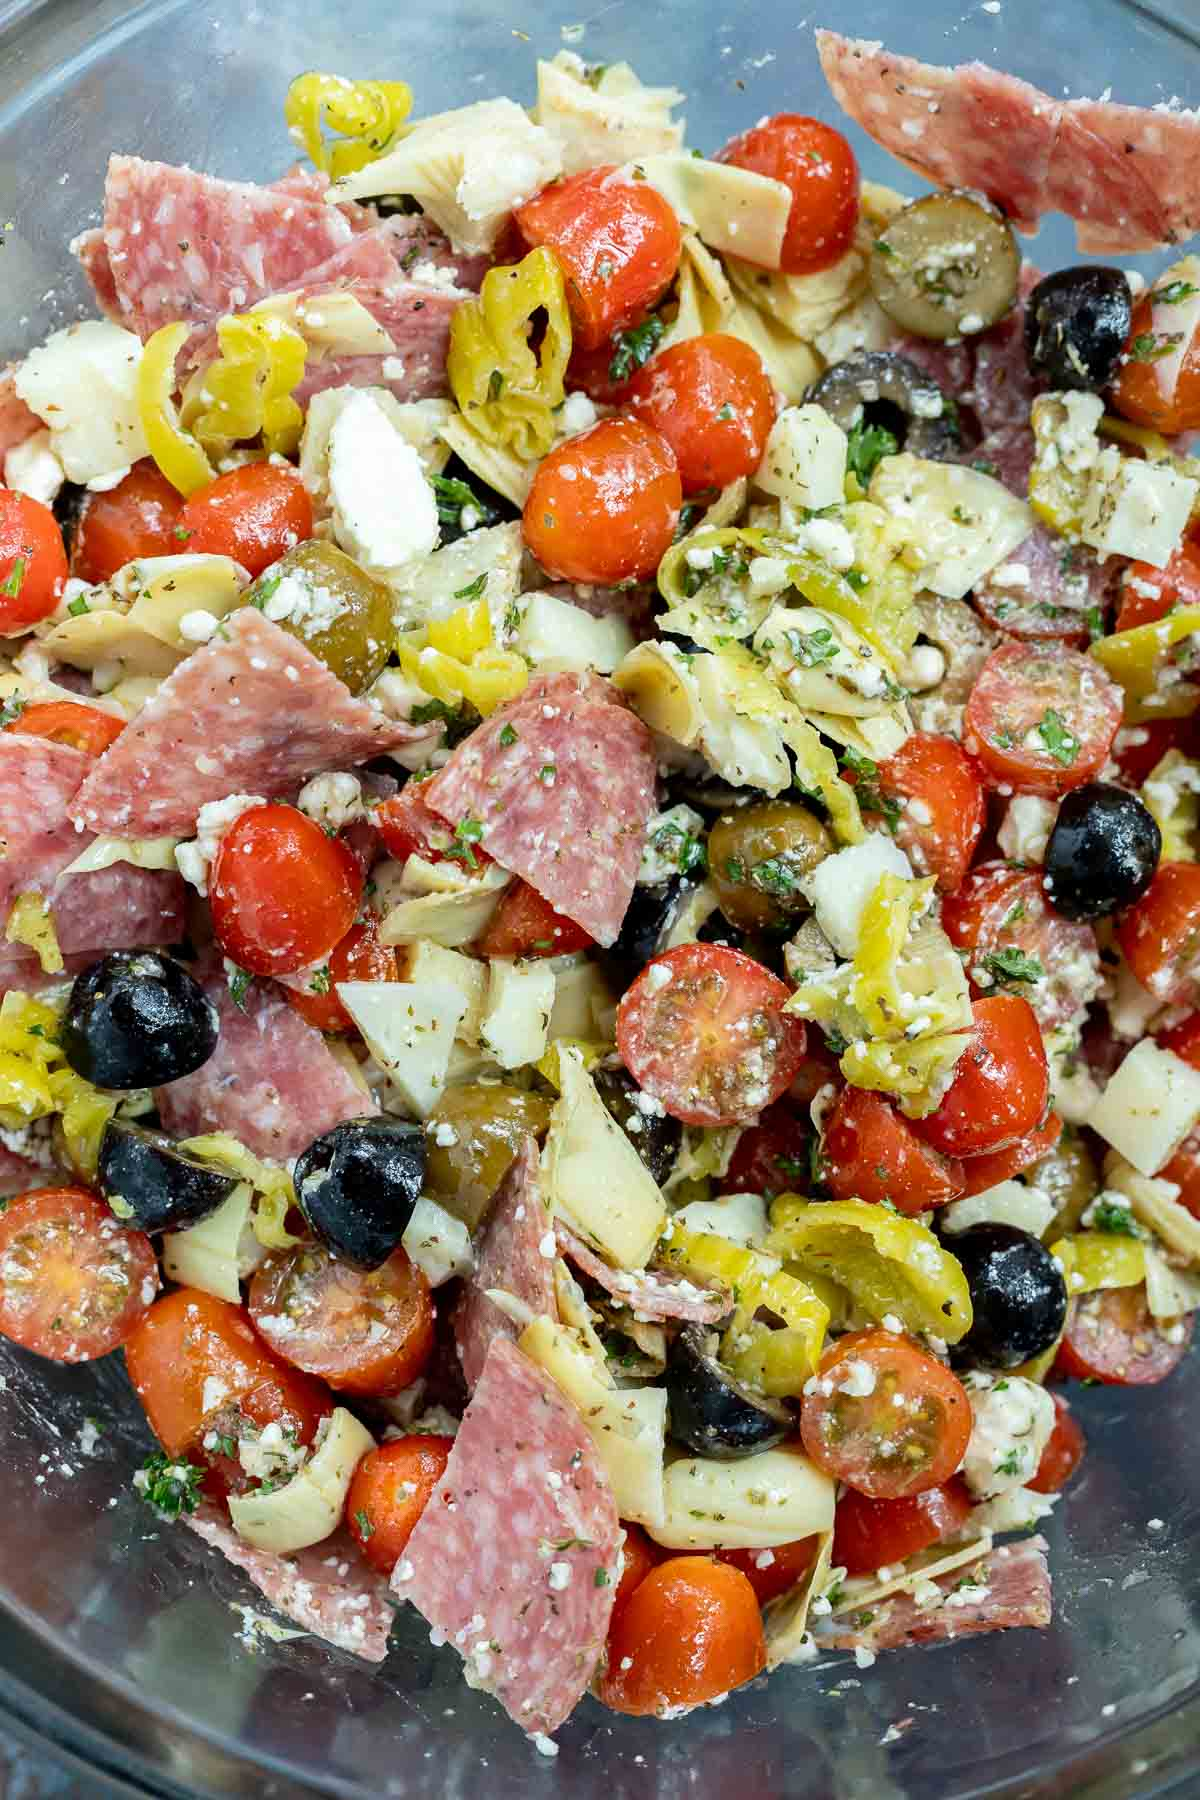 salami, olives, tomatoes, artichokes and pepperonis in glass mixing bowl